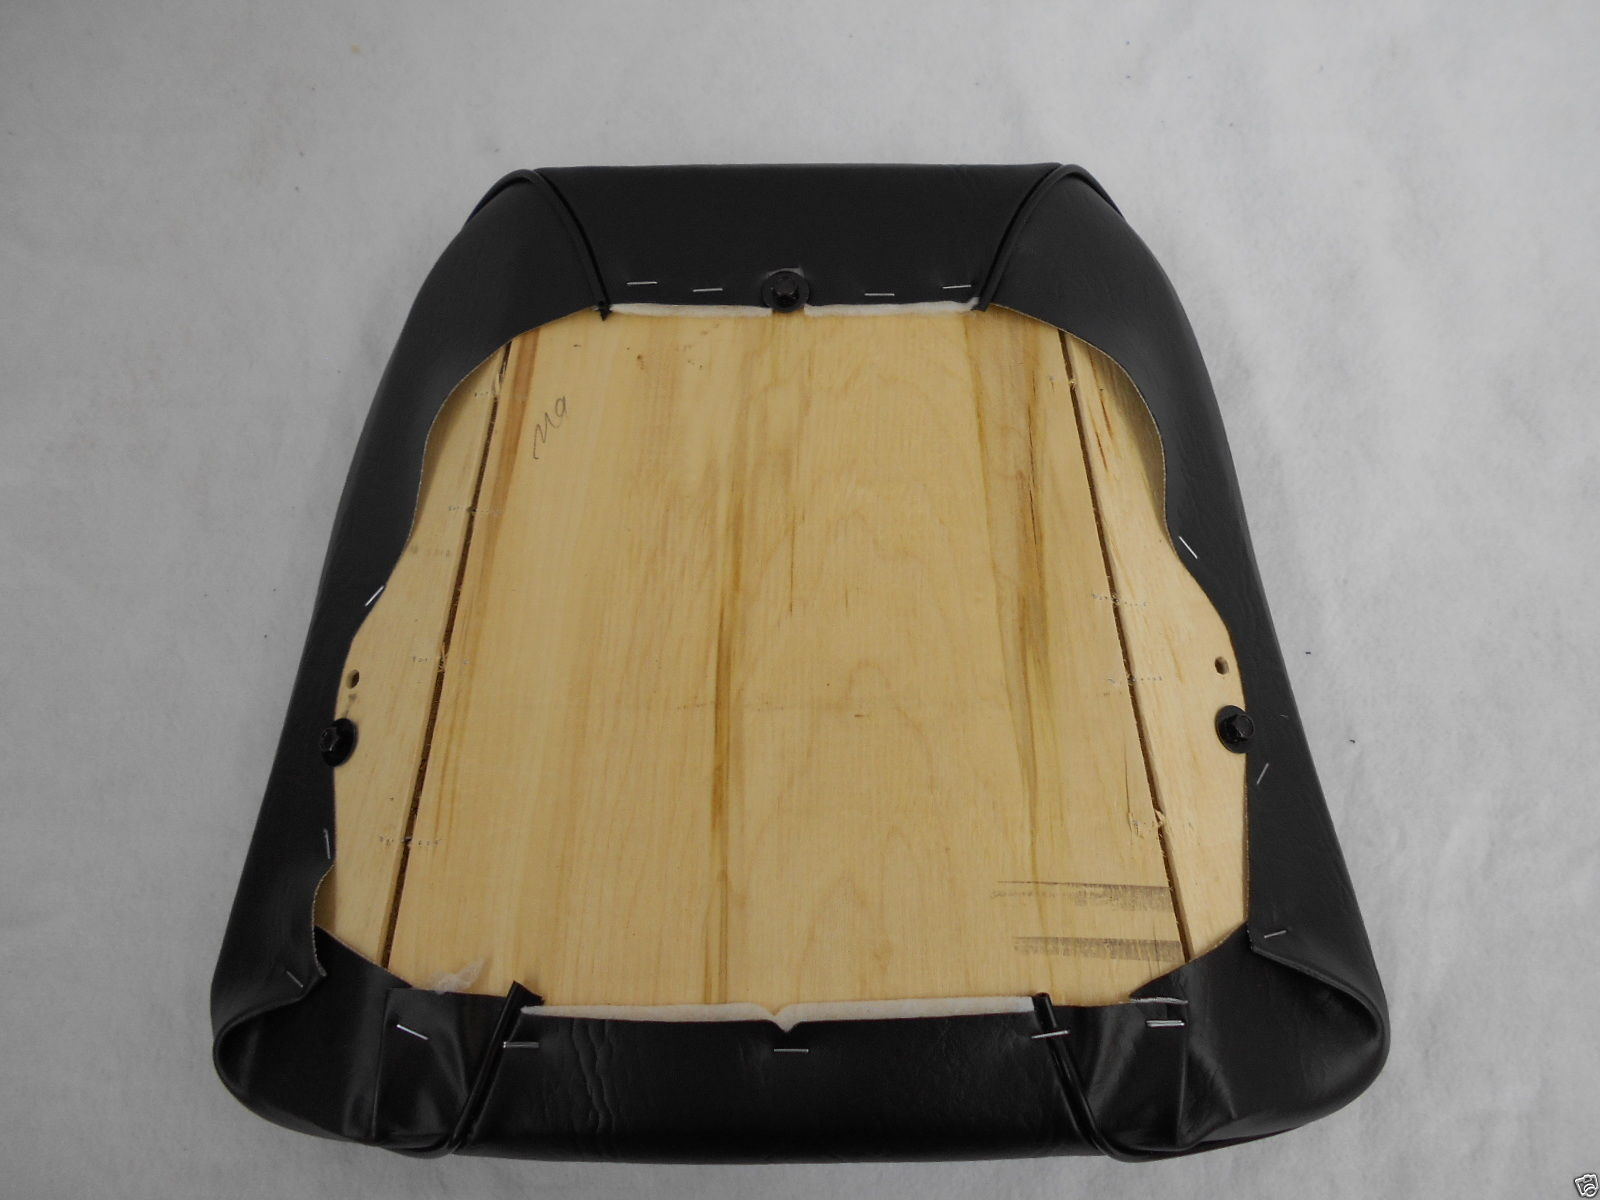 kubota seat replacement cushion set m series tractor m4030 m4700 rh seat warehouse com Kubota M5700 Fire Kubota M5700 Bucket